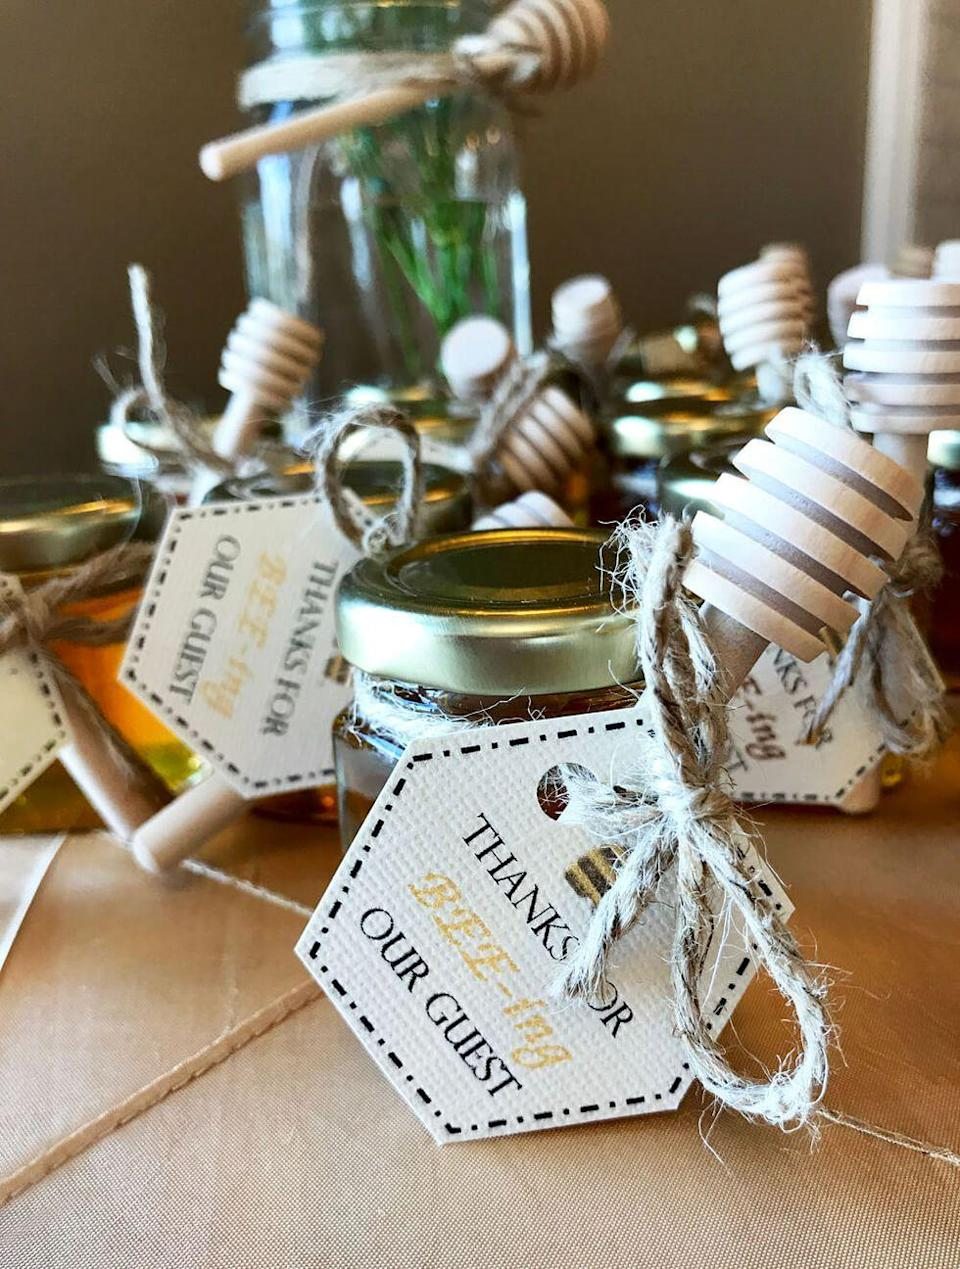 """<p>These bee-themed favor tags are a sweet way to end any summer bridal shower. Locally sourced honey doubles the charm of the gift.</p><p><strong>Get more information at <a href=""""https://halfpintpartydesign.com/mommy-to-bee-baby-shower/"""" rel=""""nofollow noopener"""" target=""""_blank"""" data-ylk=""""slk:Halfpint Design"""" class=""""link rapid-noclick-resp"""">Halfpint Design</a>.</strong></p>"""